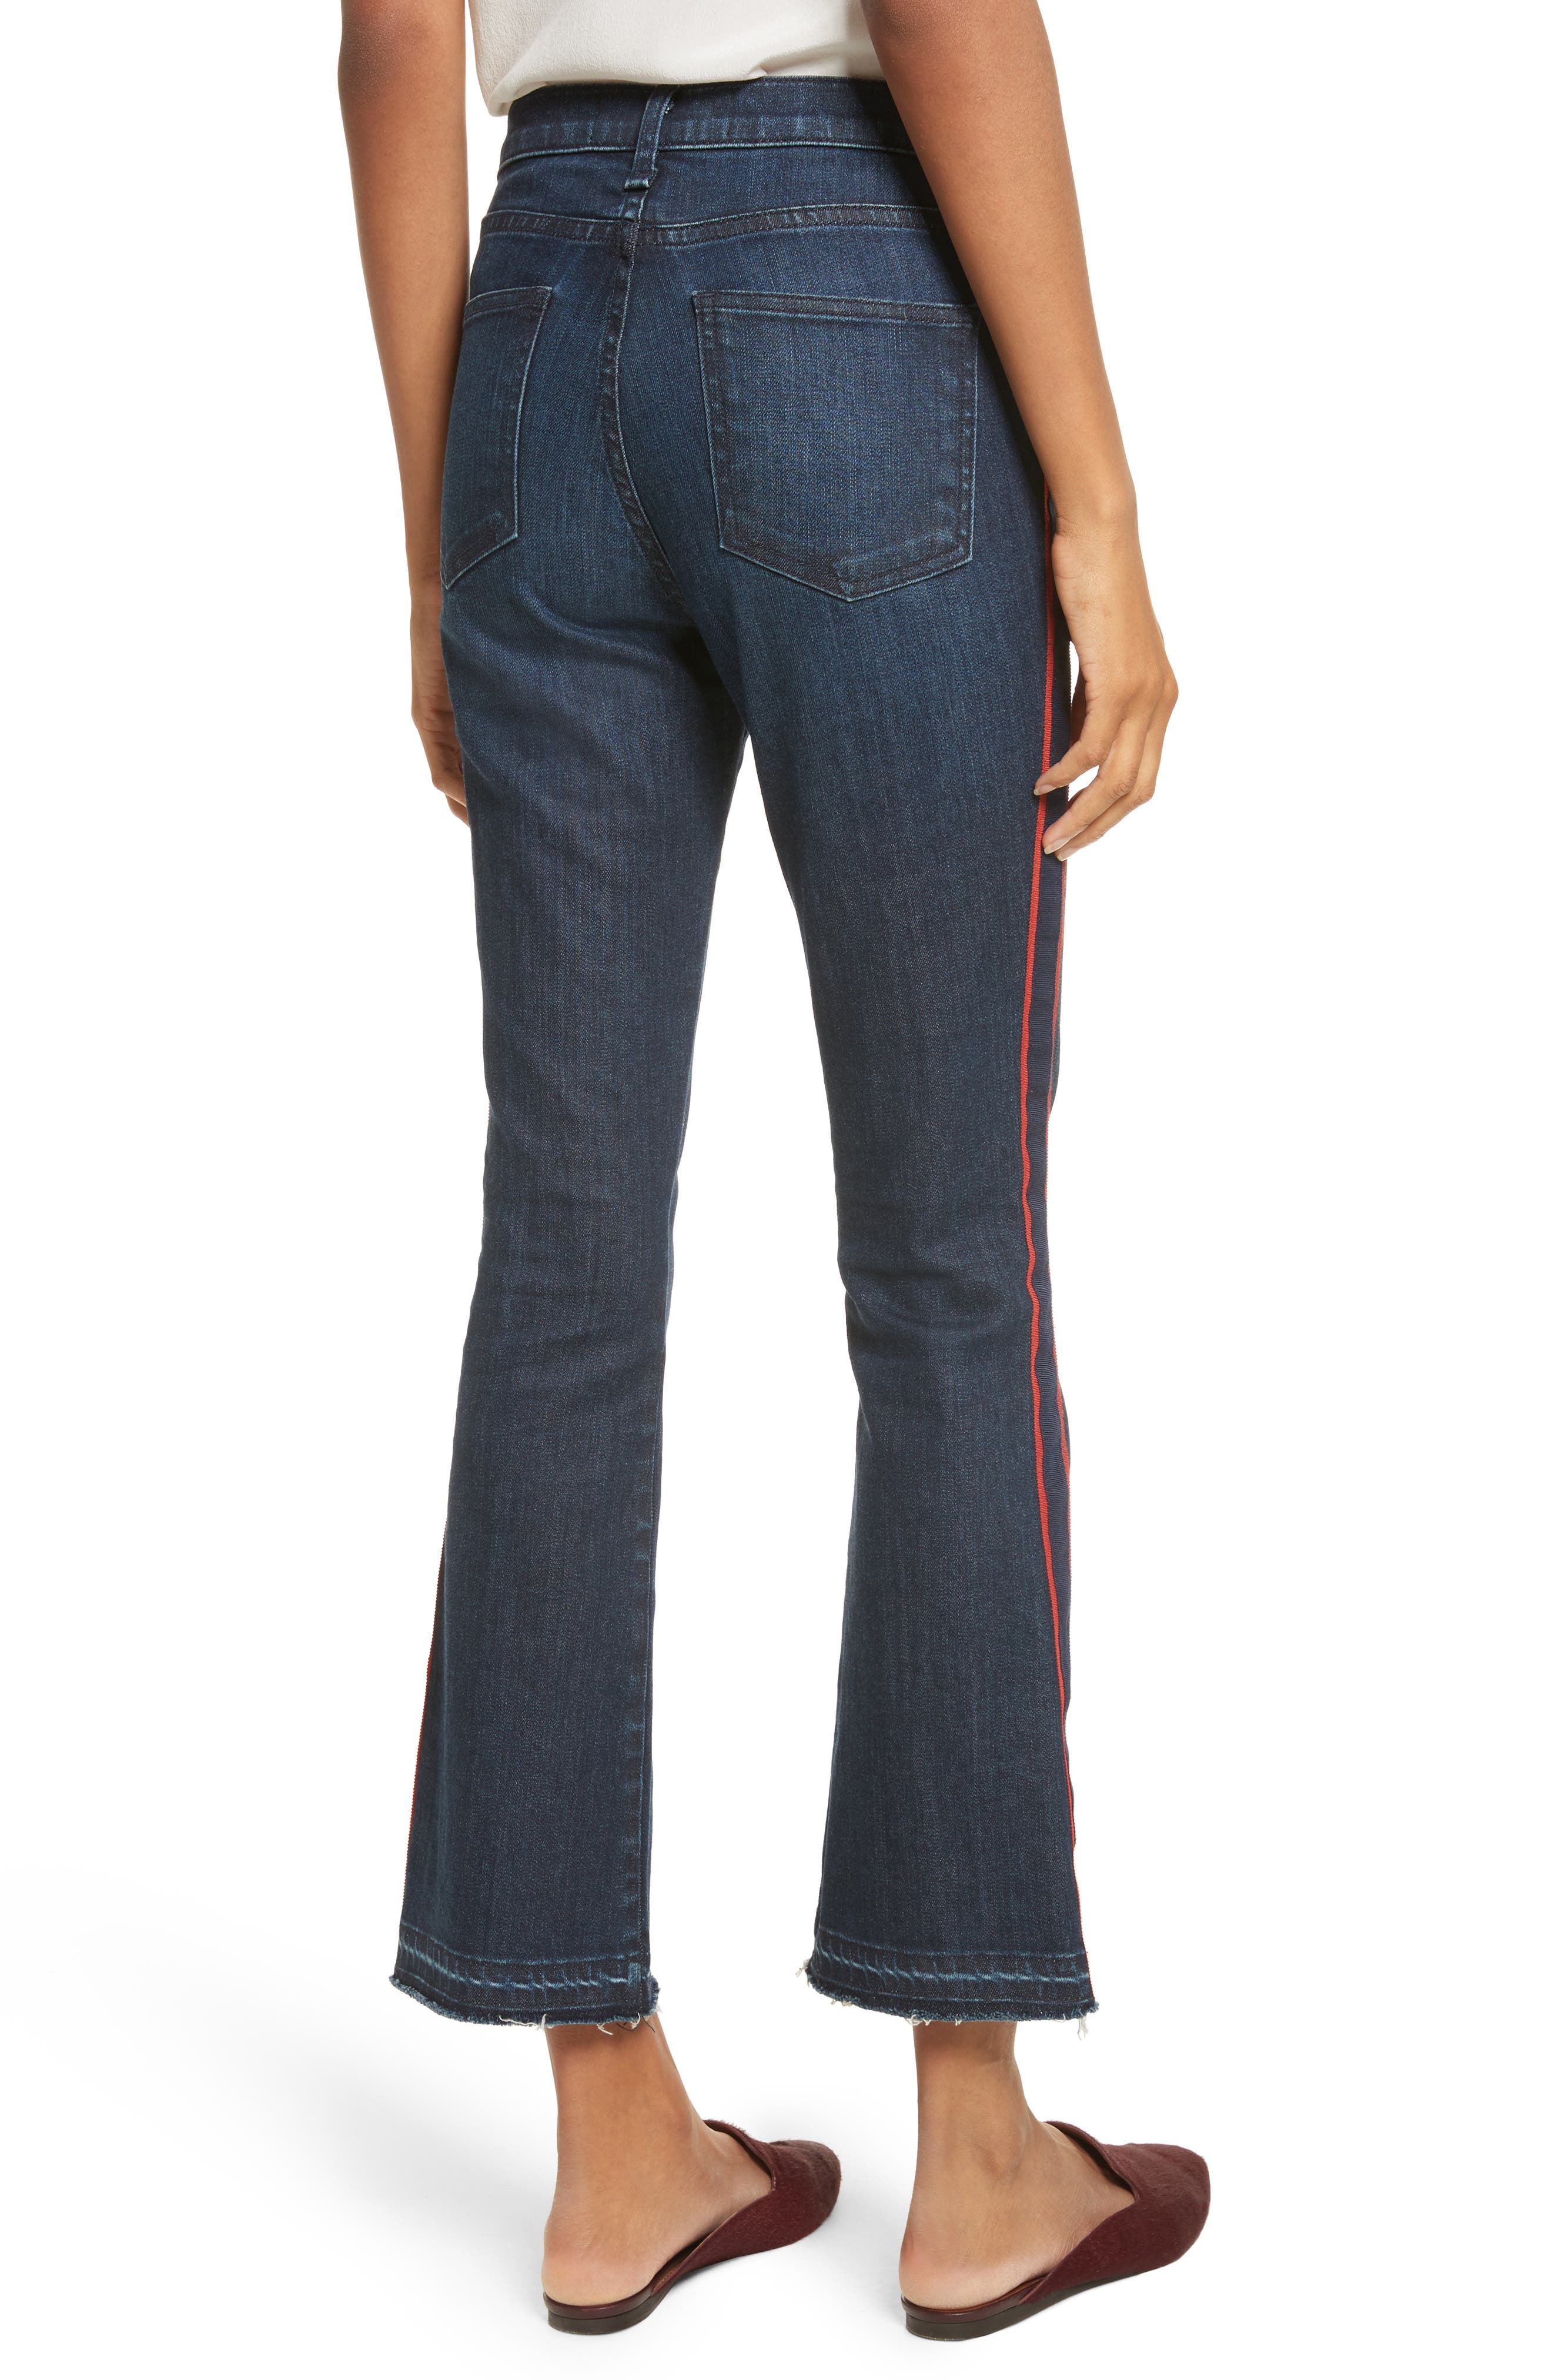 VERONICA BEARD, Carolyn Tuxedo Stripe Baby Boot Crop Jeans, Alternate thumbnail 2, color, MIDNIGHT FRAY/ RED